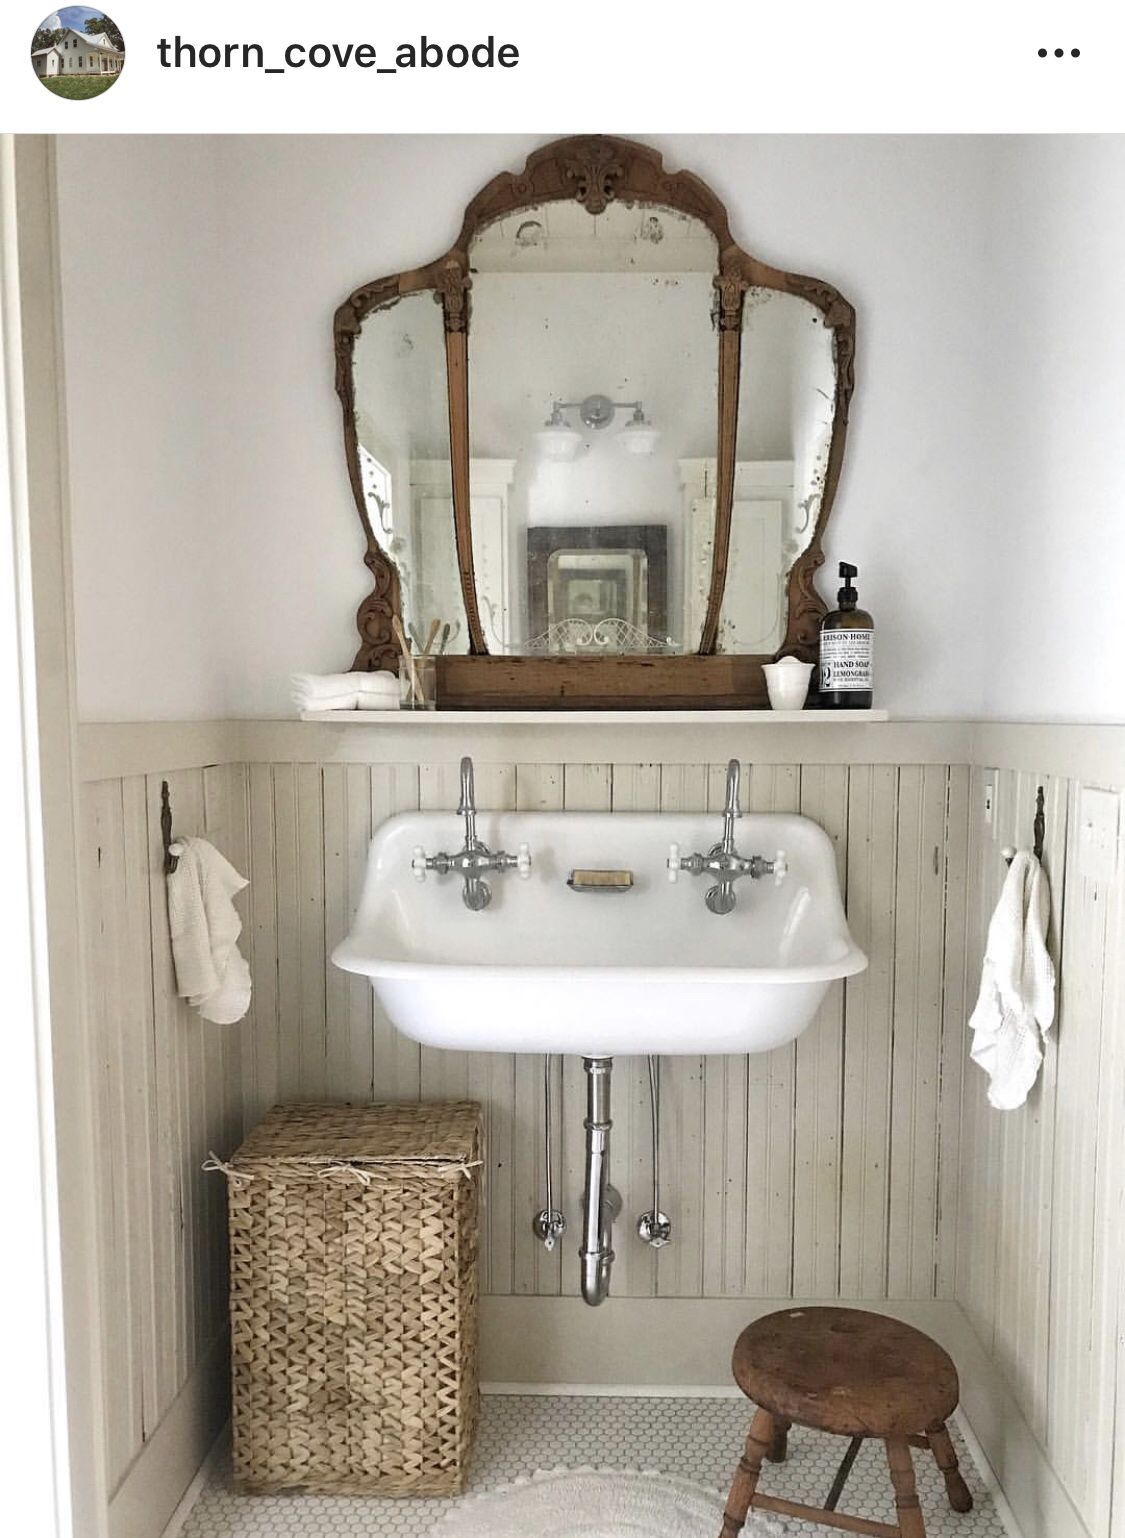 Pin By Sweetoldegahome On Cottagey Bathrooms Farmhouse Bathroom Decor House Bathroom Vintage Bathroom